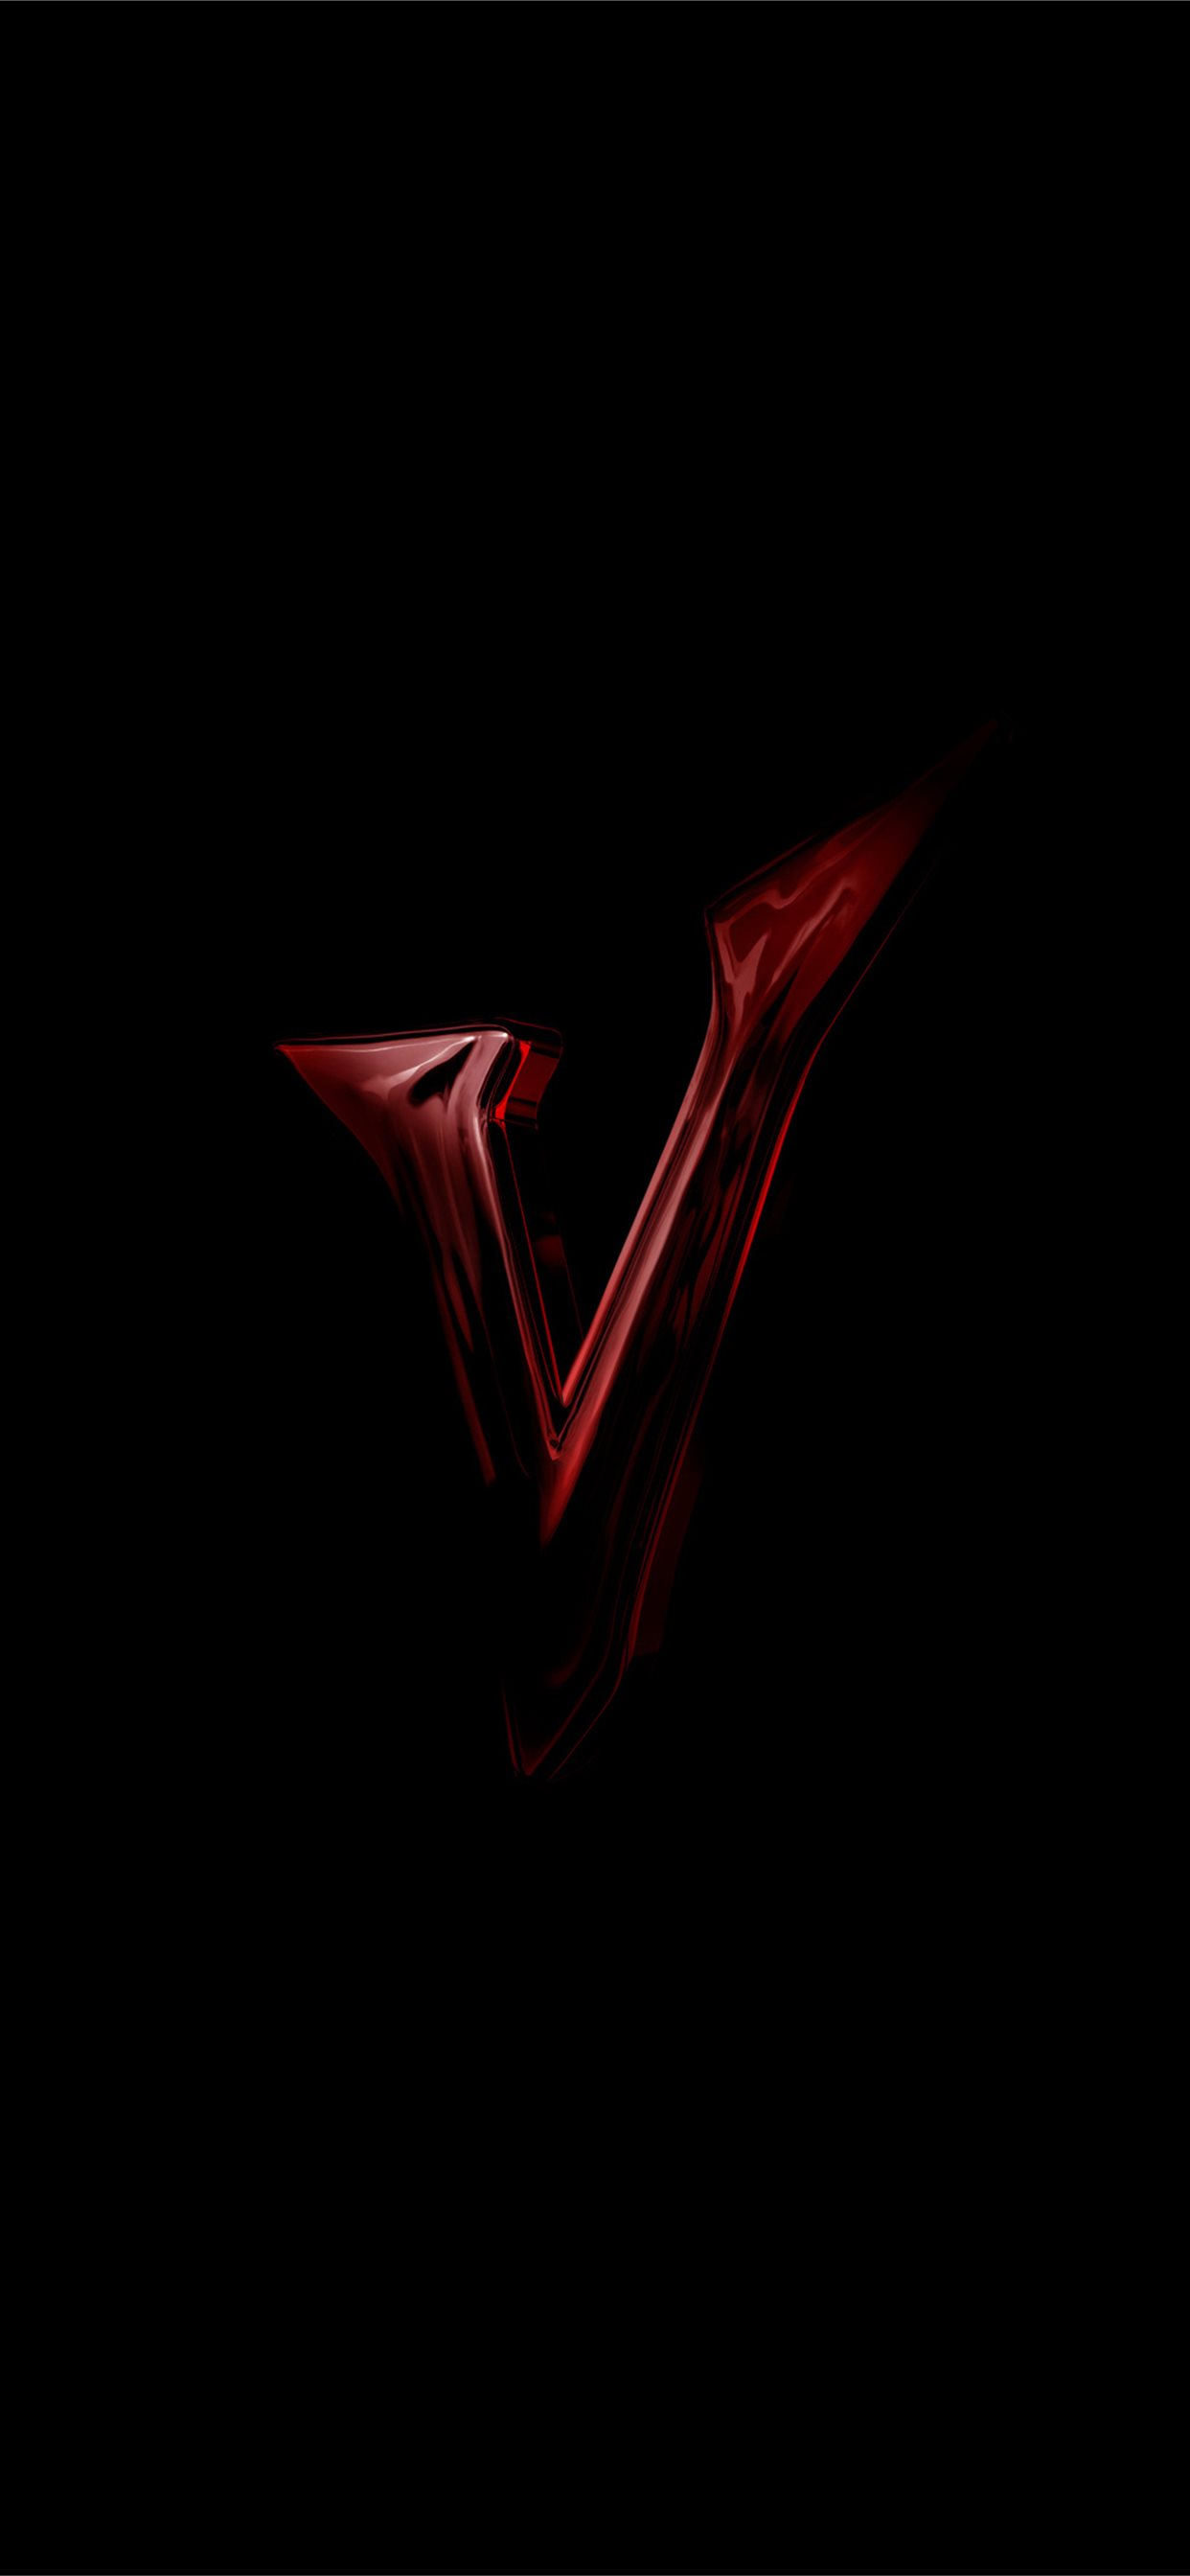 Venom Let There Be Carnage Logo Iphone X Wallpapers Free Download